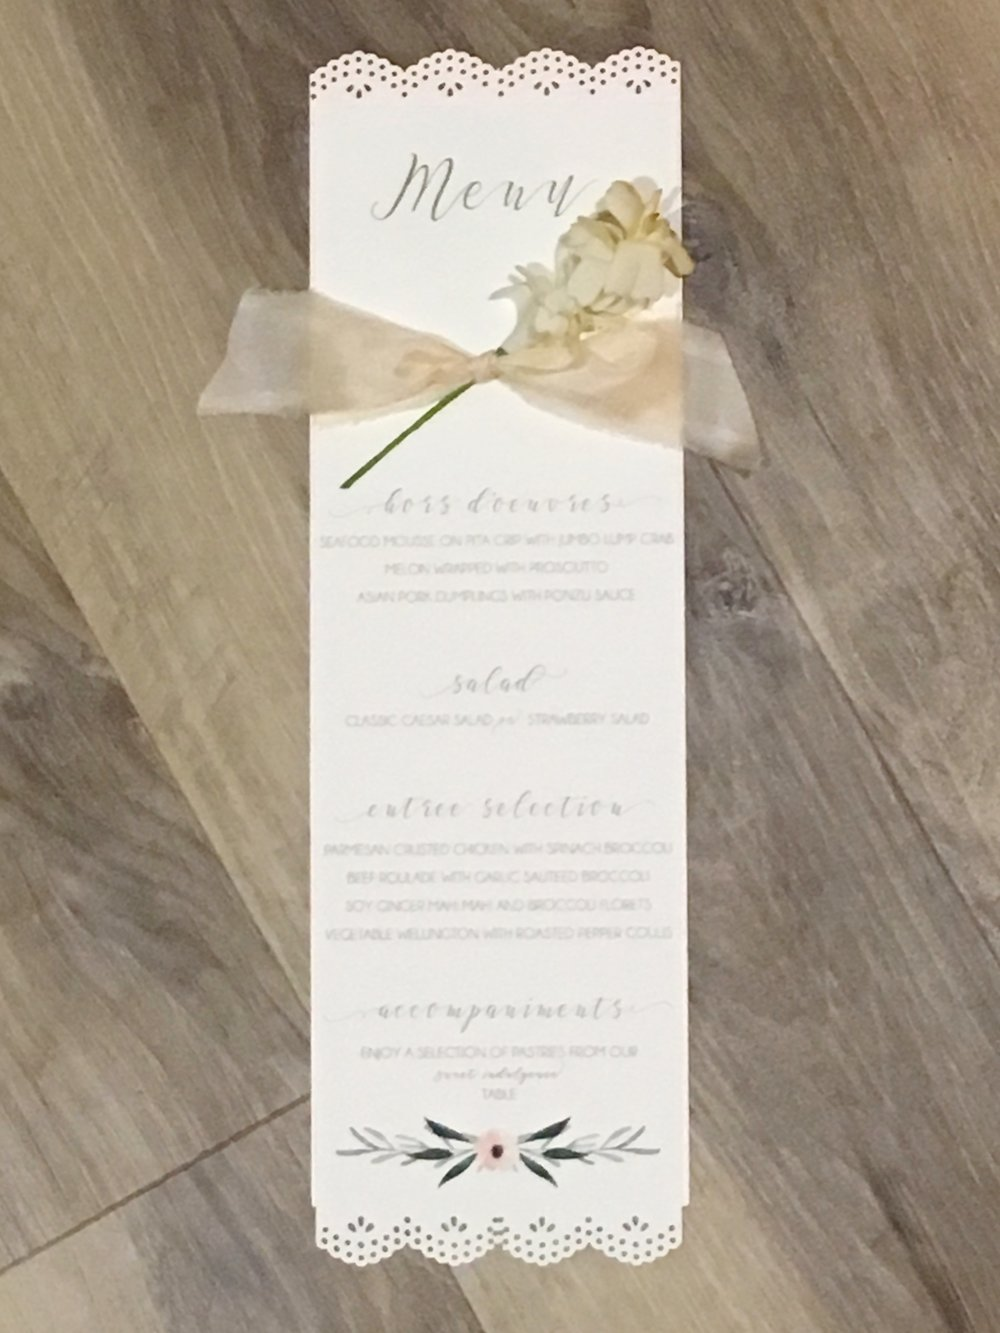 Central PA, hand lettering, Calligraphy, JesSmith Designs, custom invitations, wedding invitations, custom signage-01-31 20.51.01.jpg